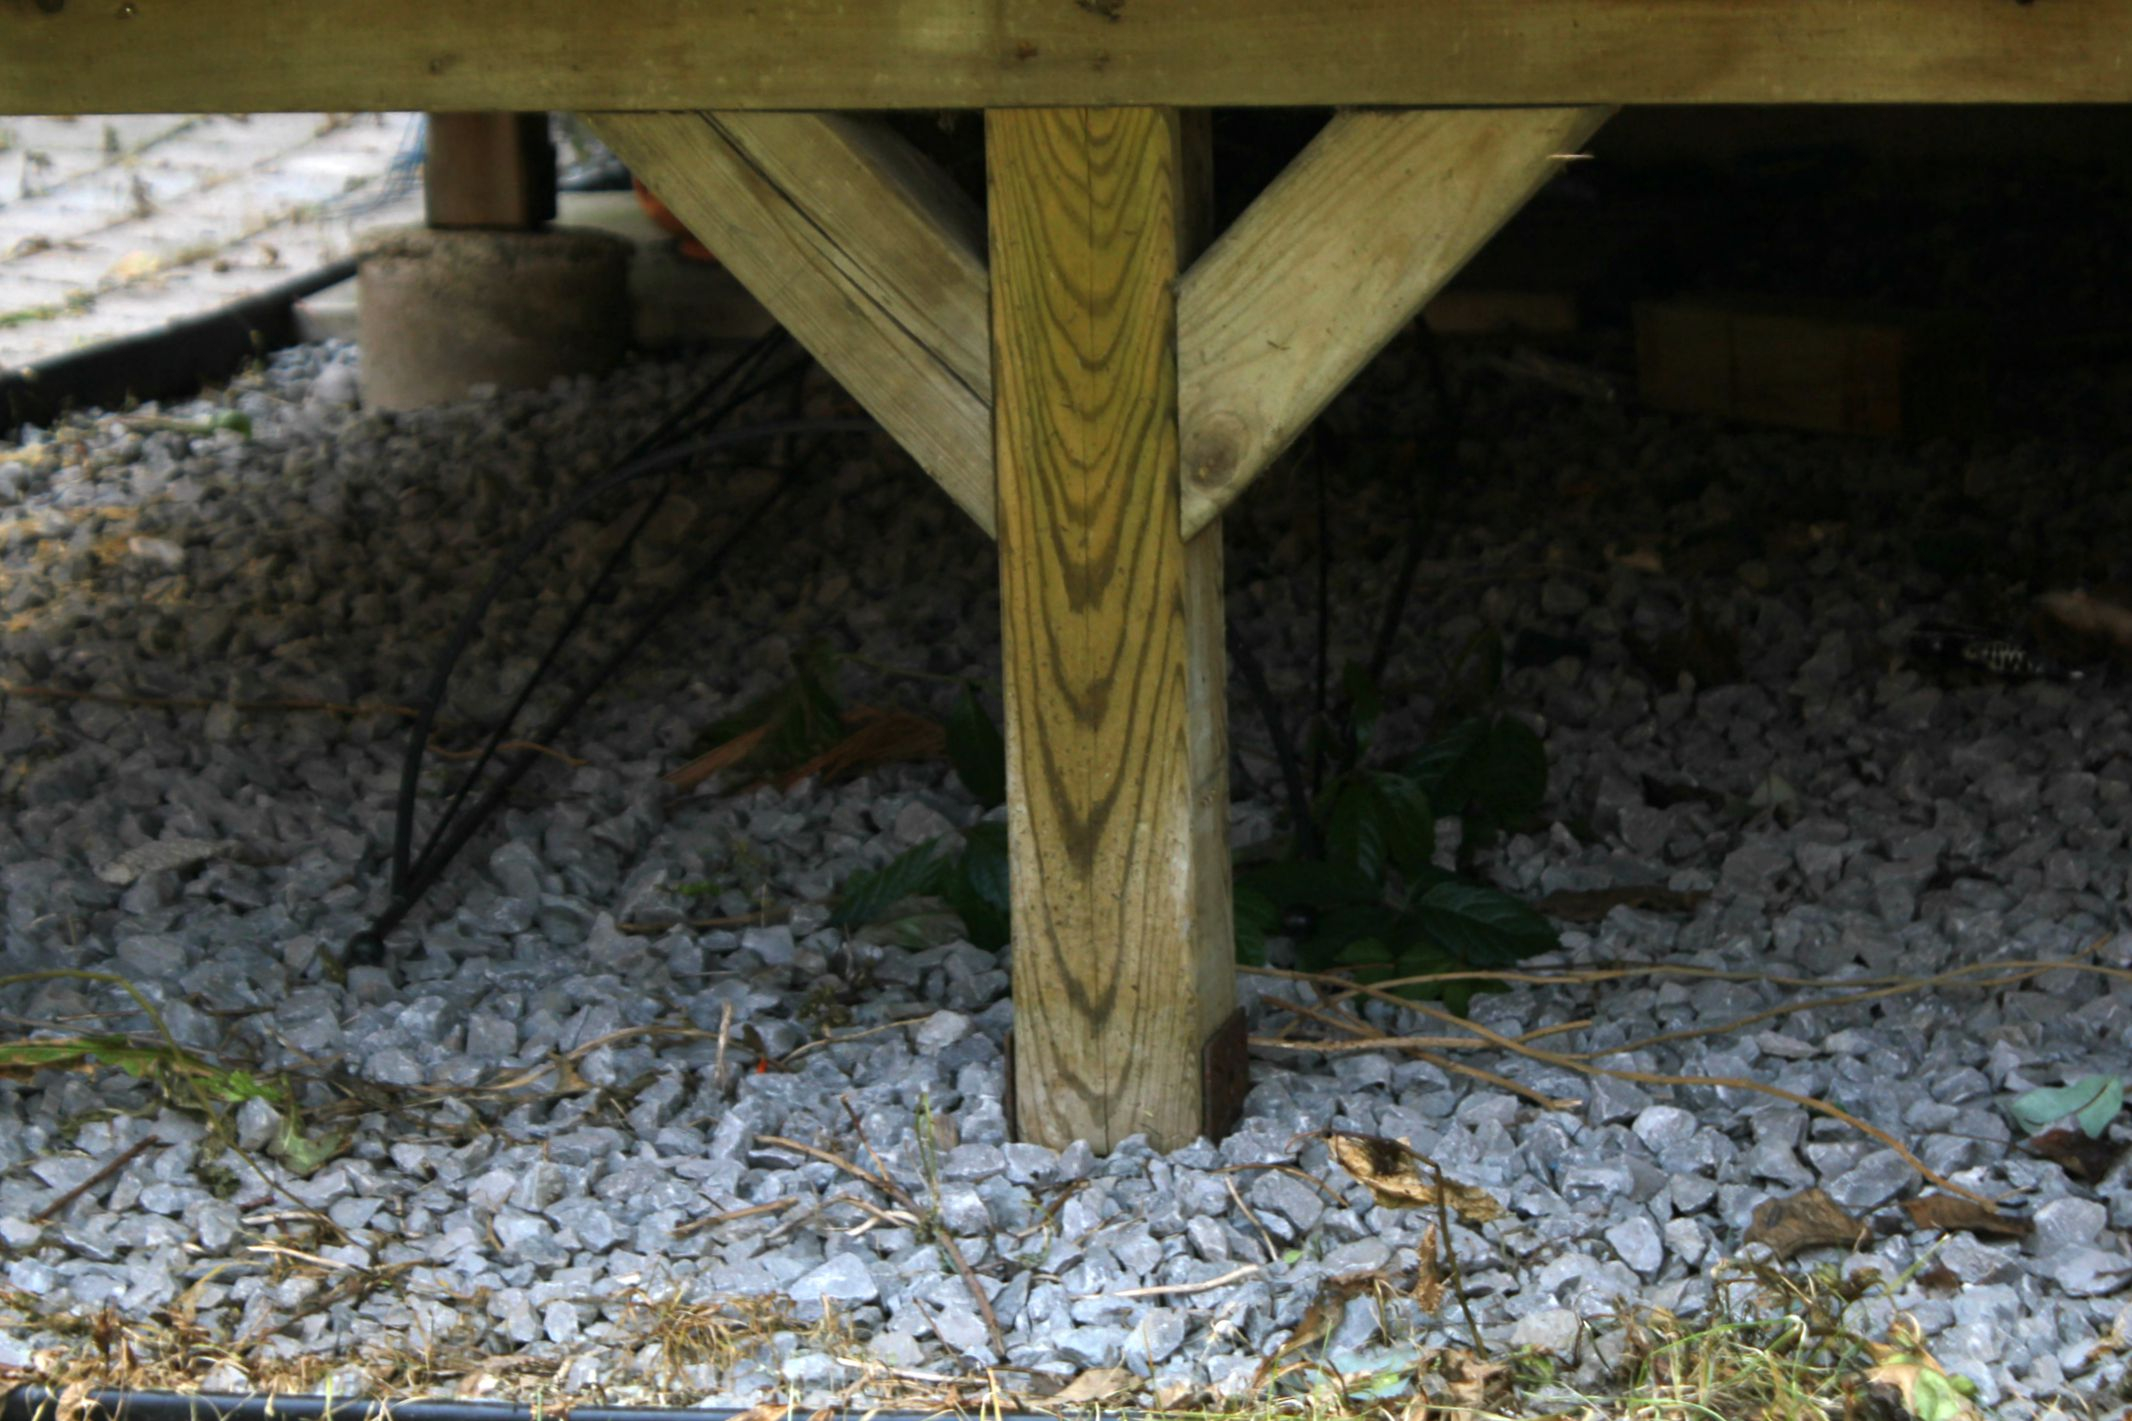 Turtles And Tails Under Deck Enclosure With Access Door in dimensions 2132 X 1421